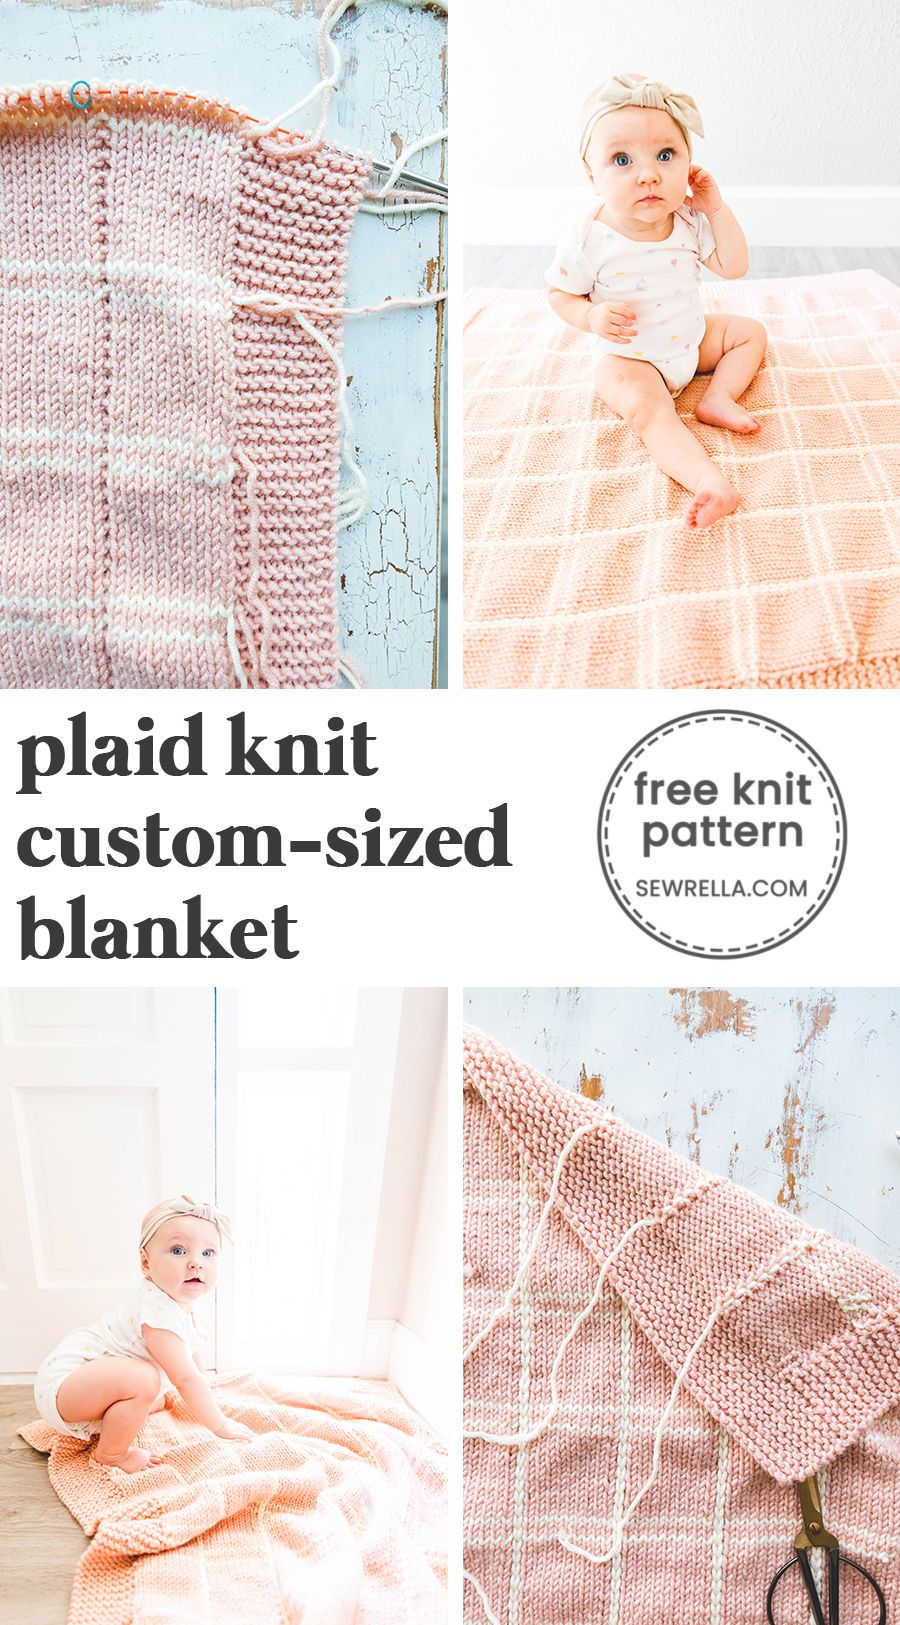 How to knit a plaid blanket cute sewing projects